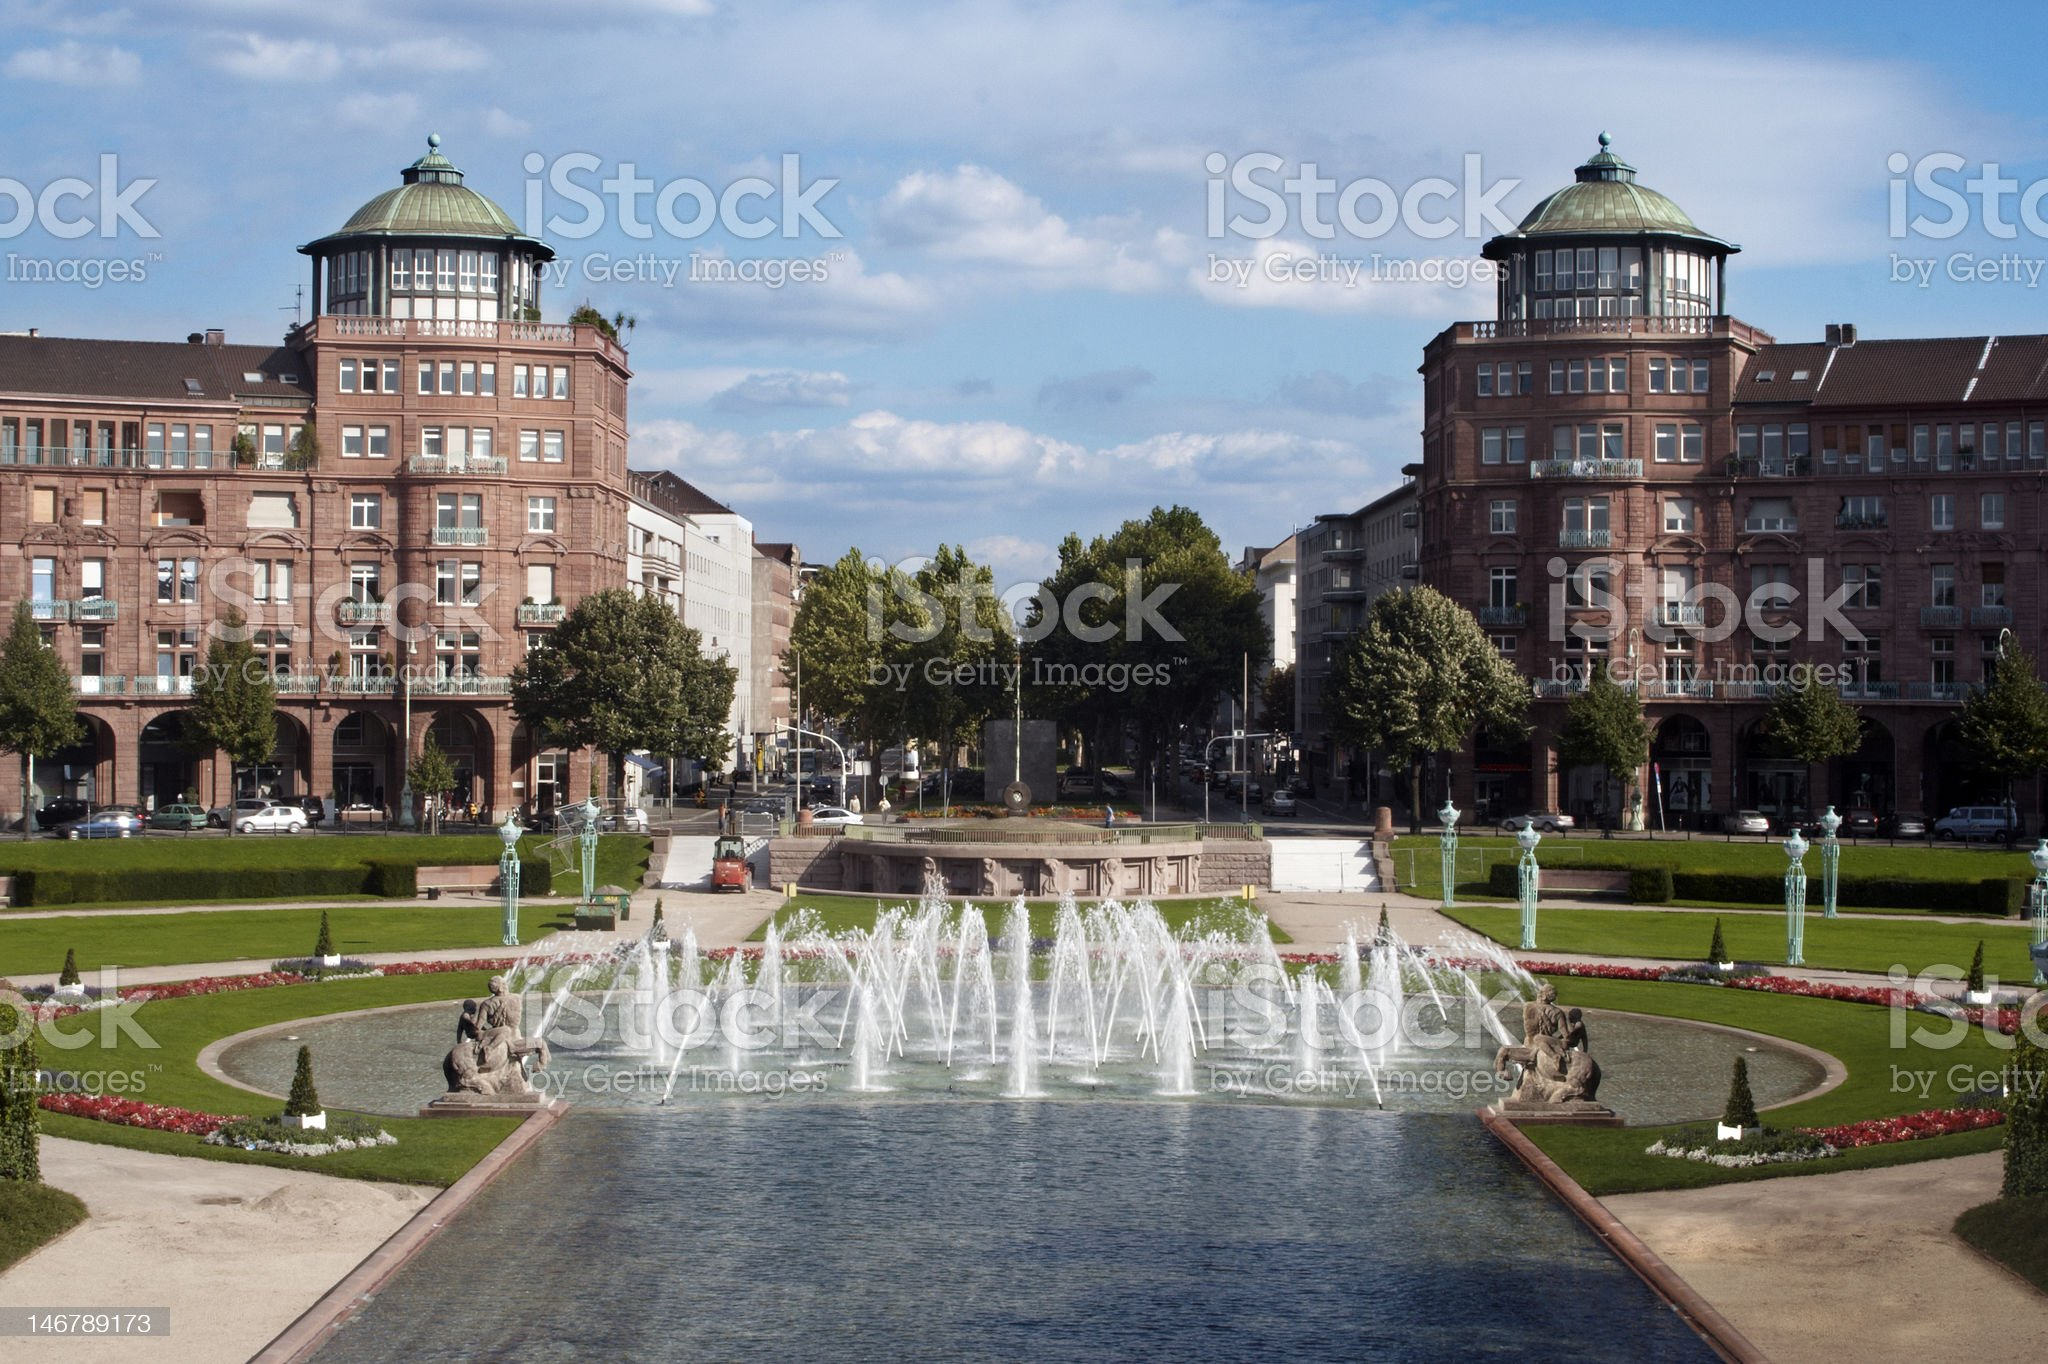 WaterFontains in a Park royalty-free stock photo